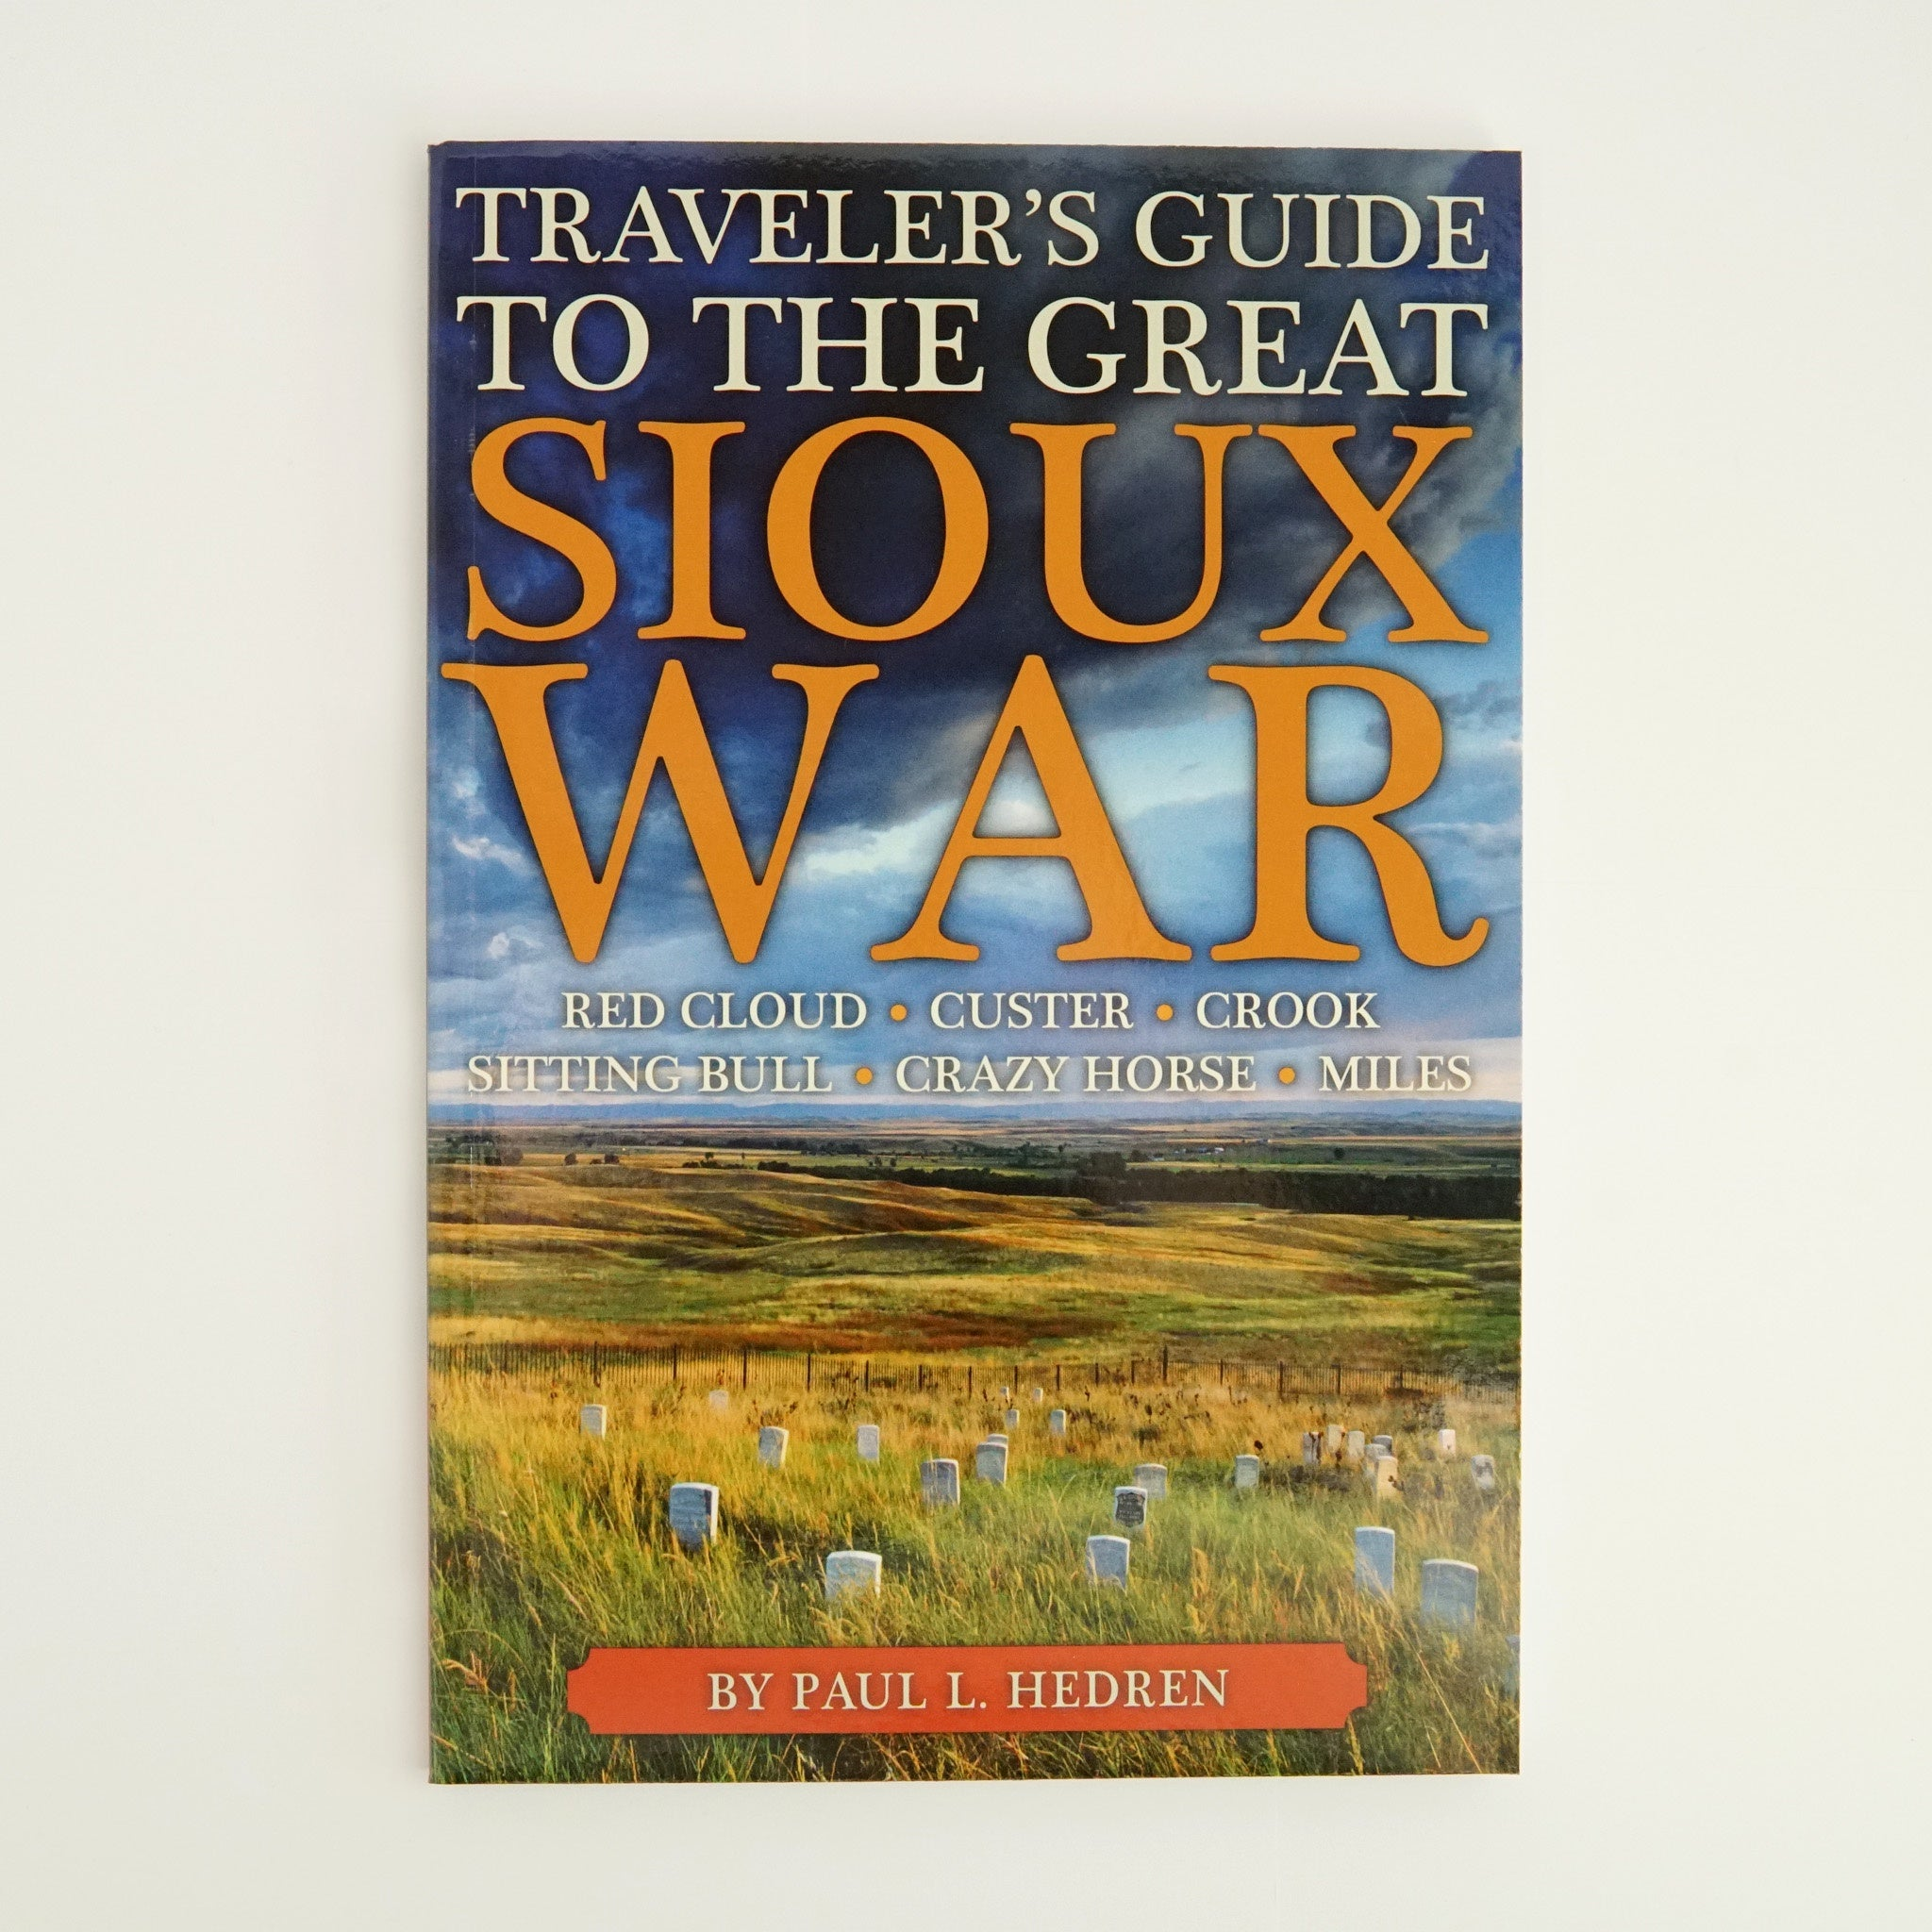 Traveler's Guide to the Great Sioux War by Paul L. Hedren